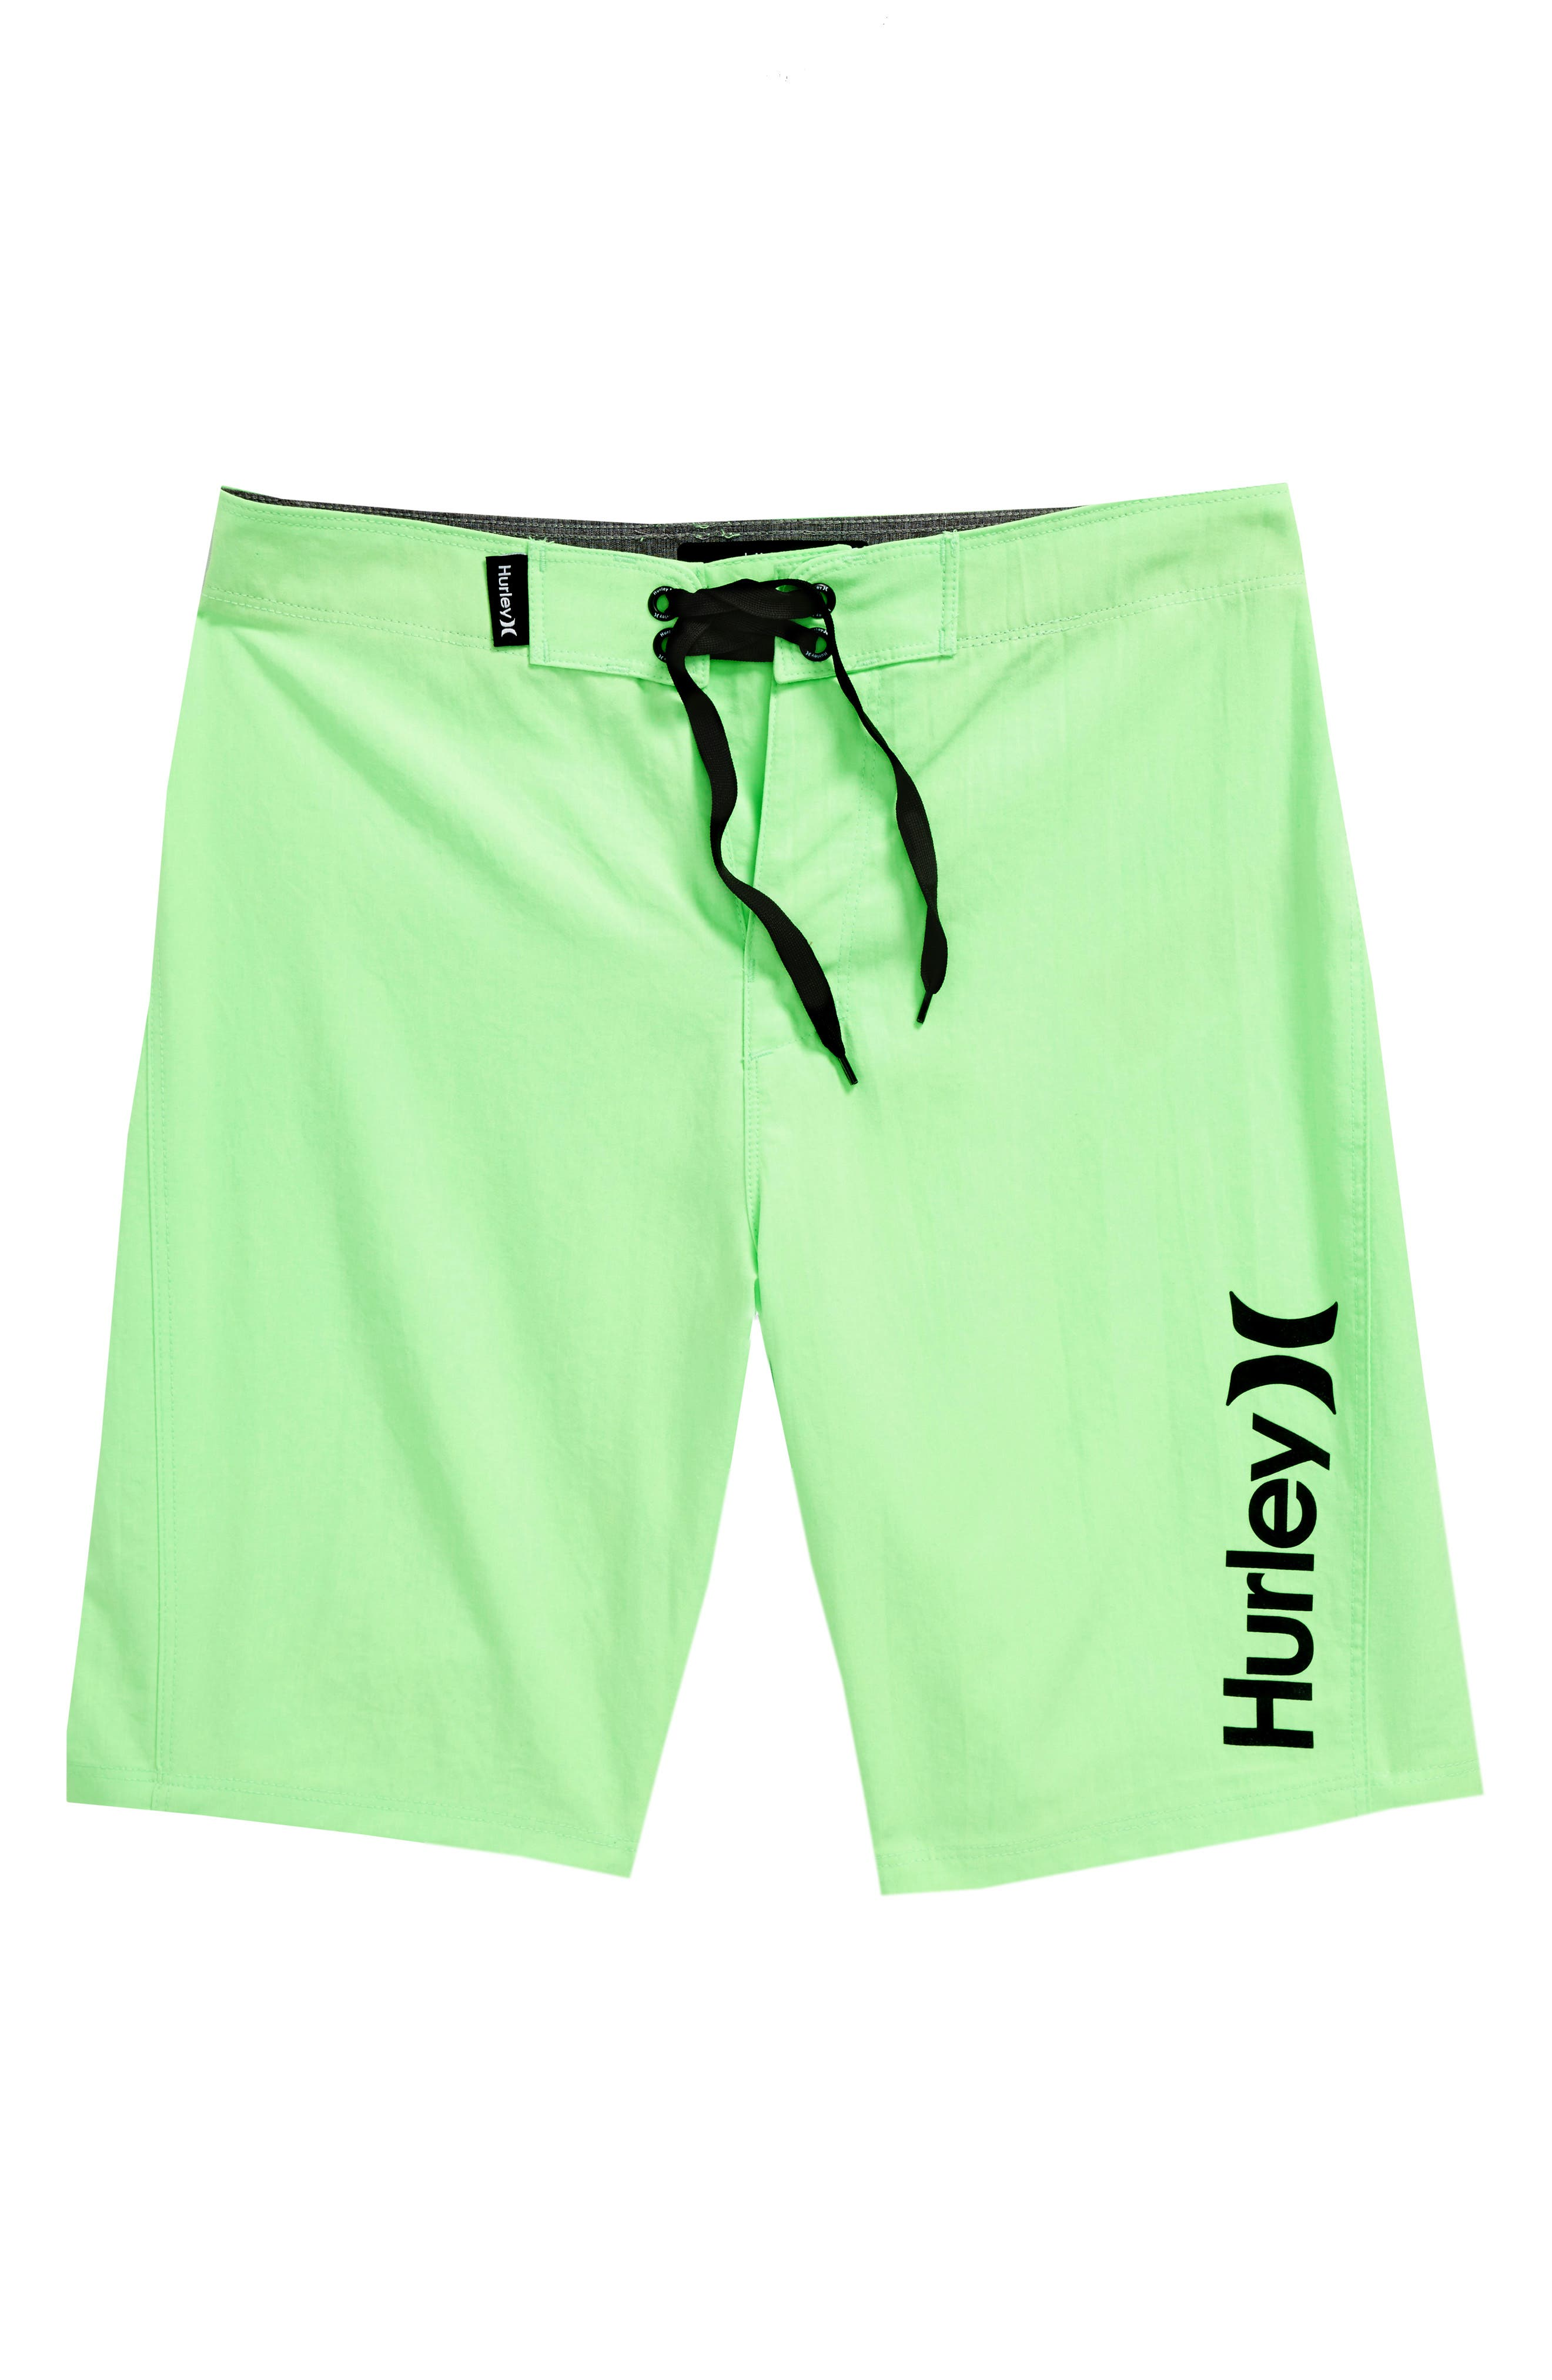 One and Only Dri-FIT Board Shorts,                         Main,                         color, Neon Green Heather